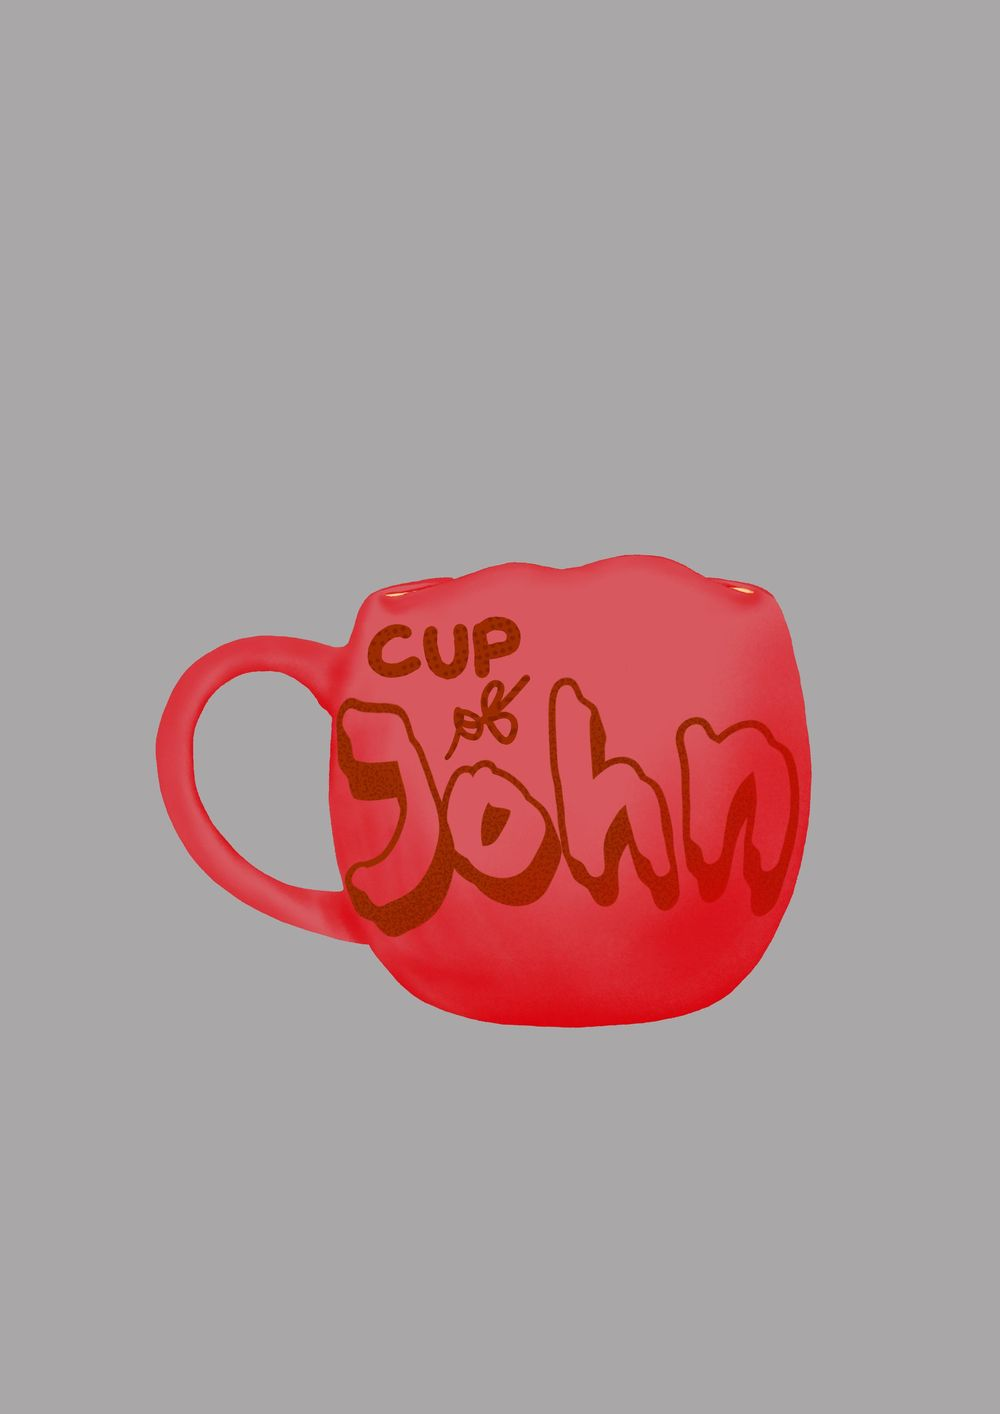 Cup of John - image 1 - student project